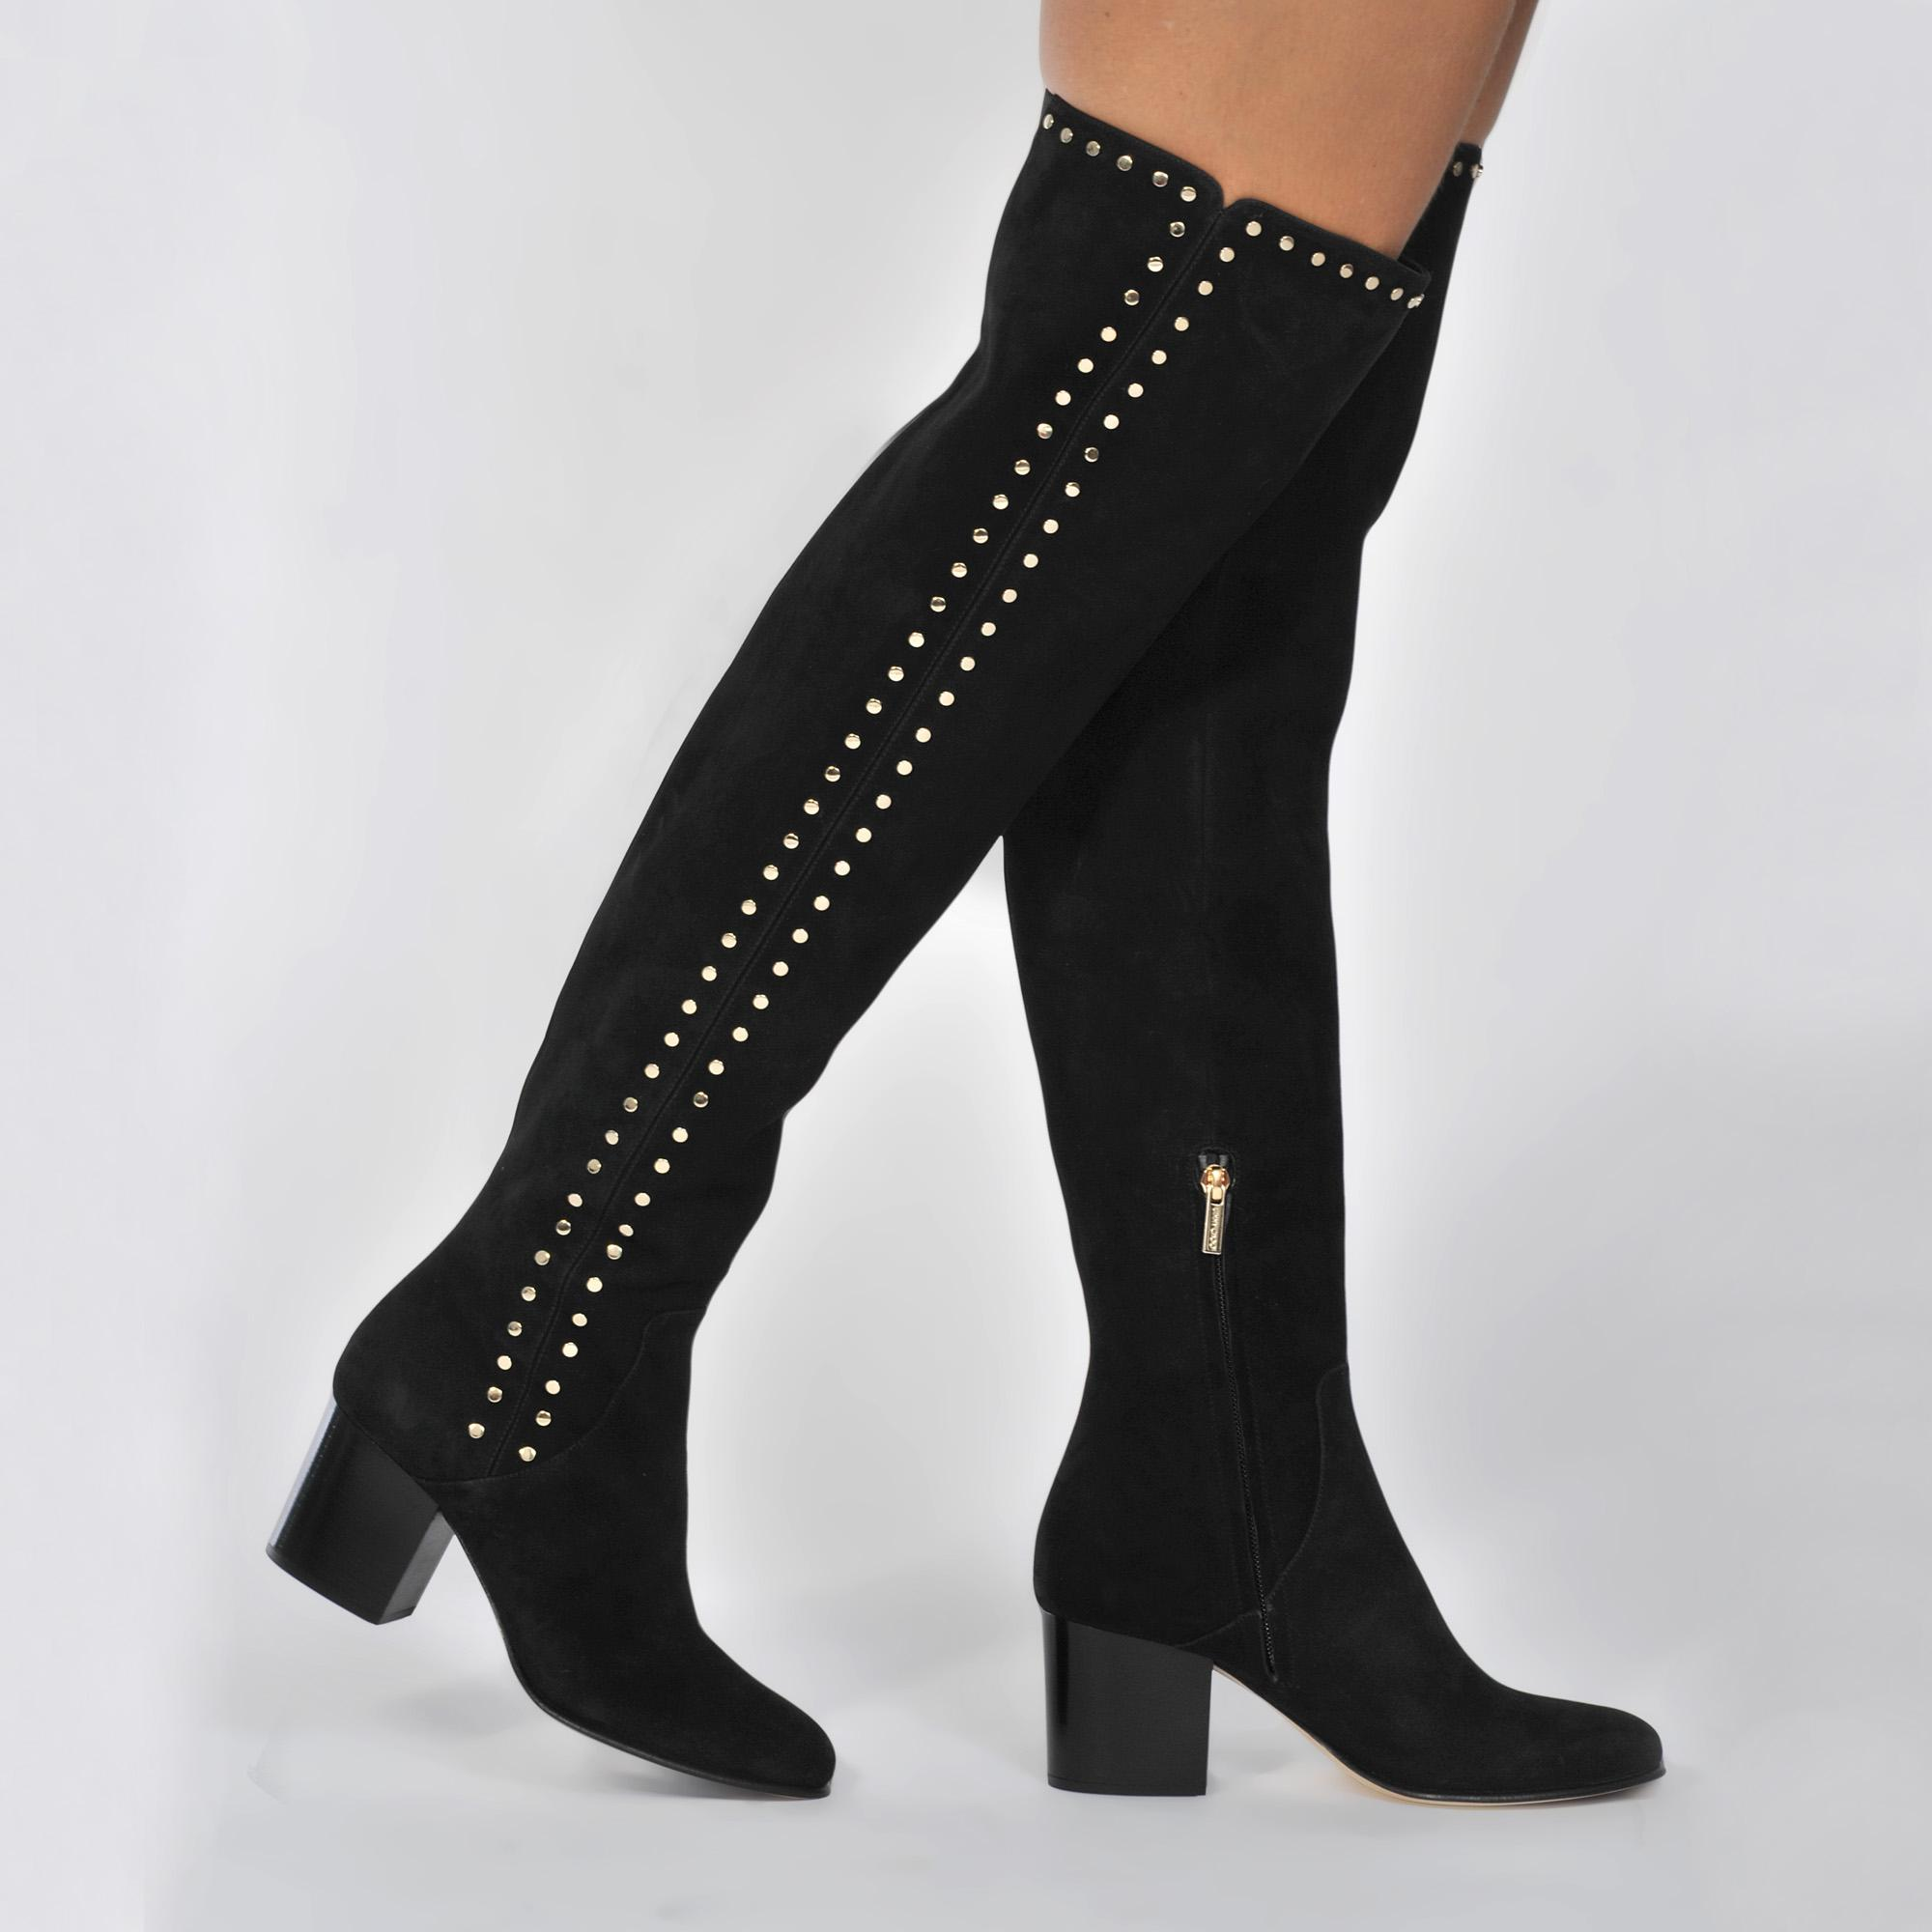 e287361d8a8 Jimmy Choo Harlem Over The Knee Boots in Black - Lyst